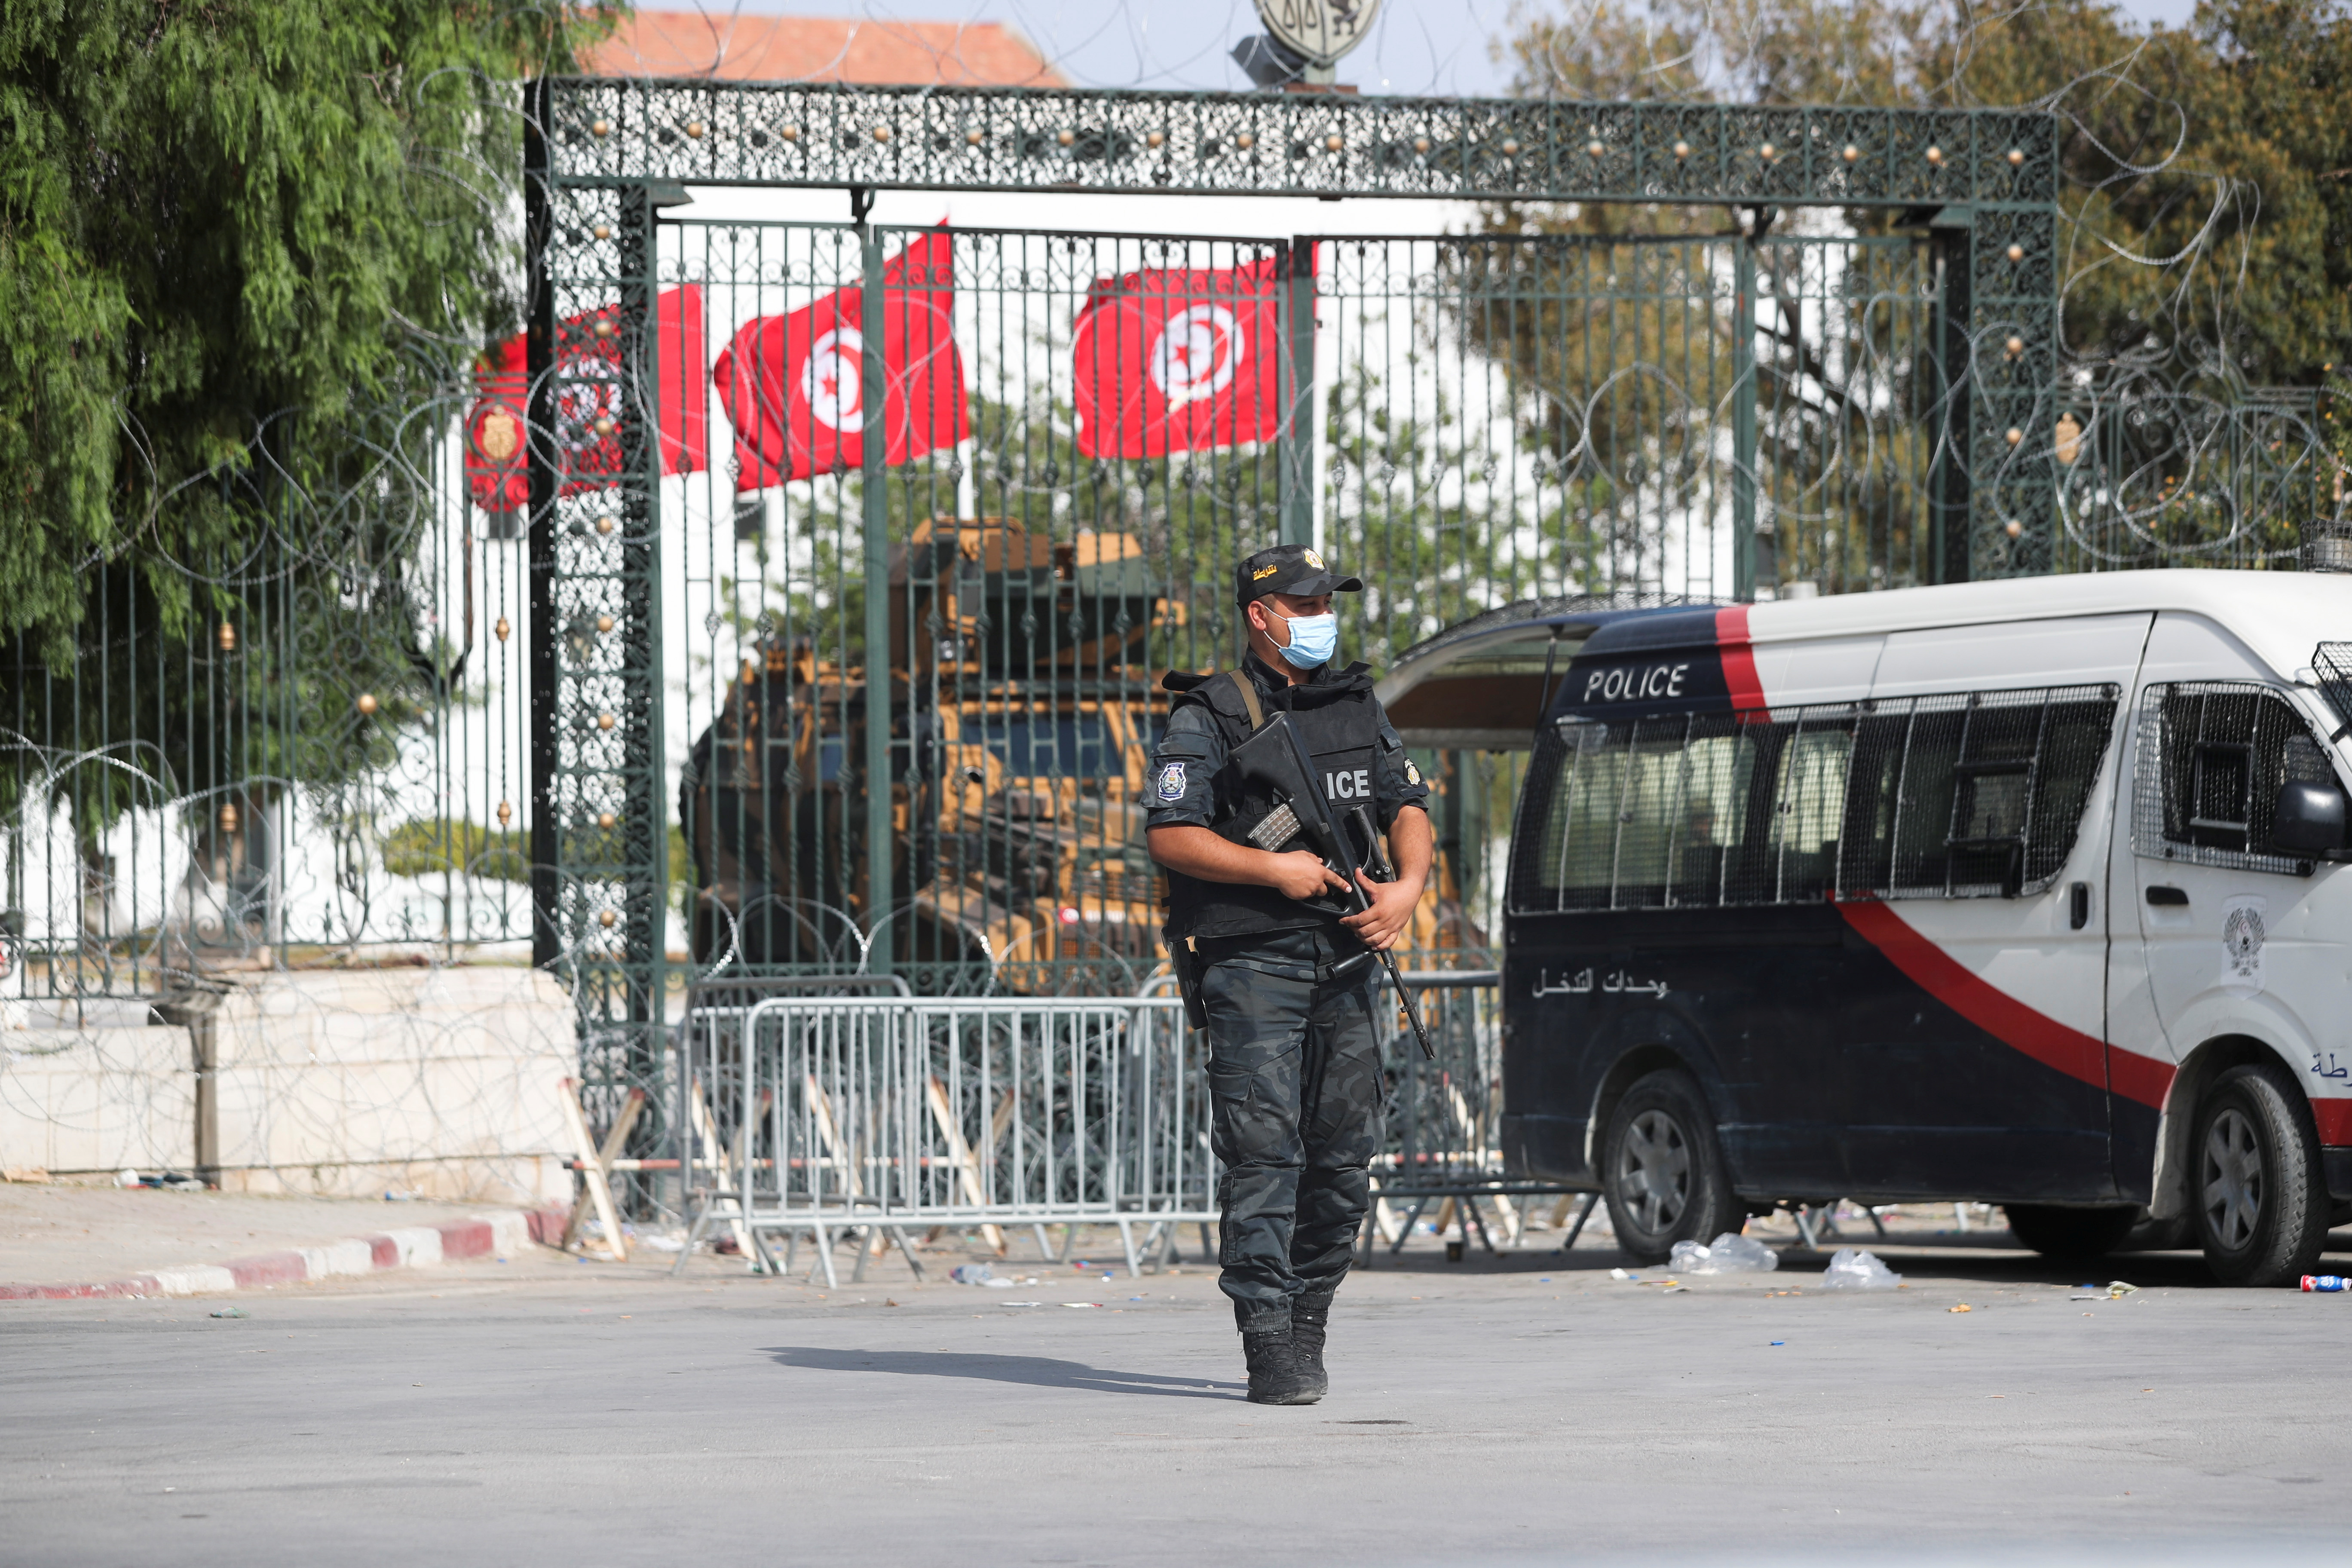 A police officer stands guard outside the parliament building in Tunis,Tunisia July 29, 2021. REUTERS/Ammar Awad